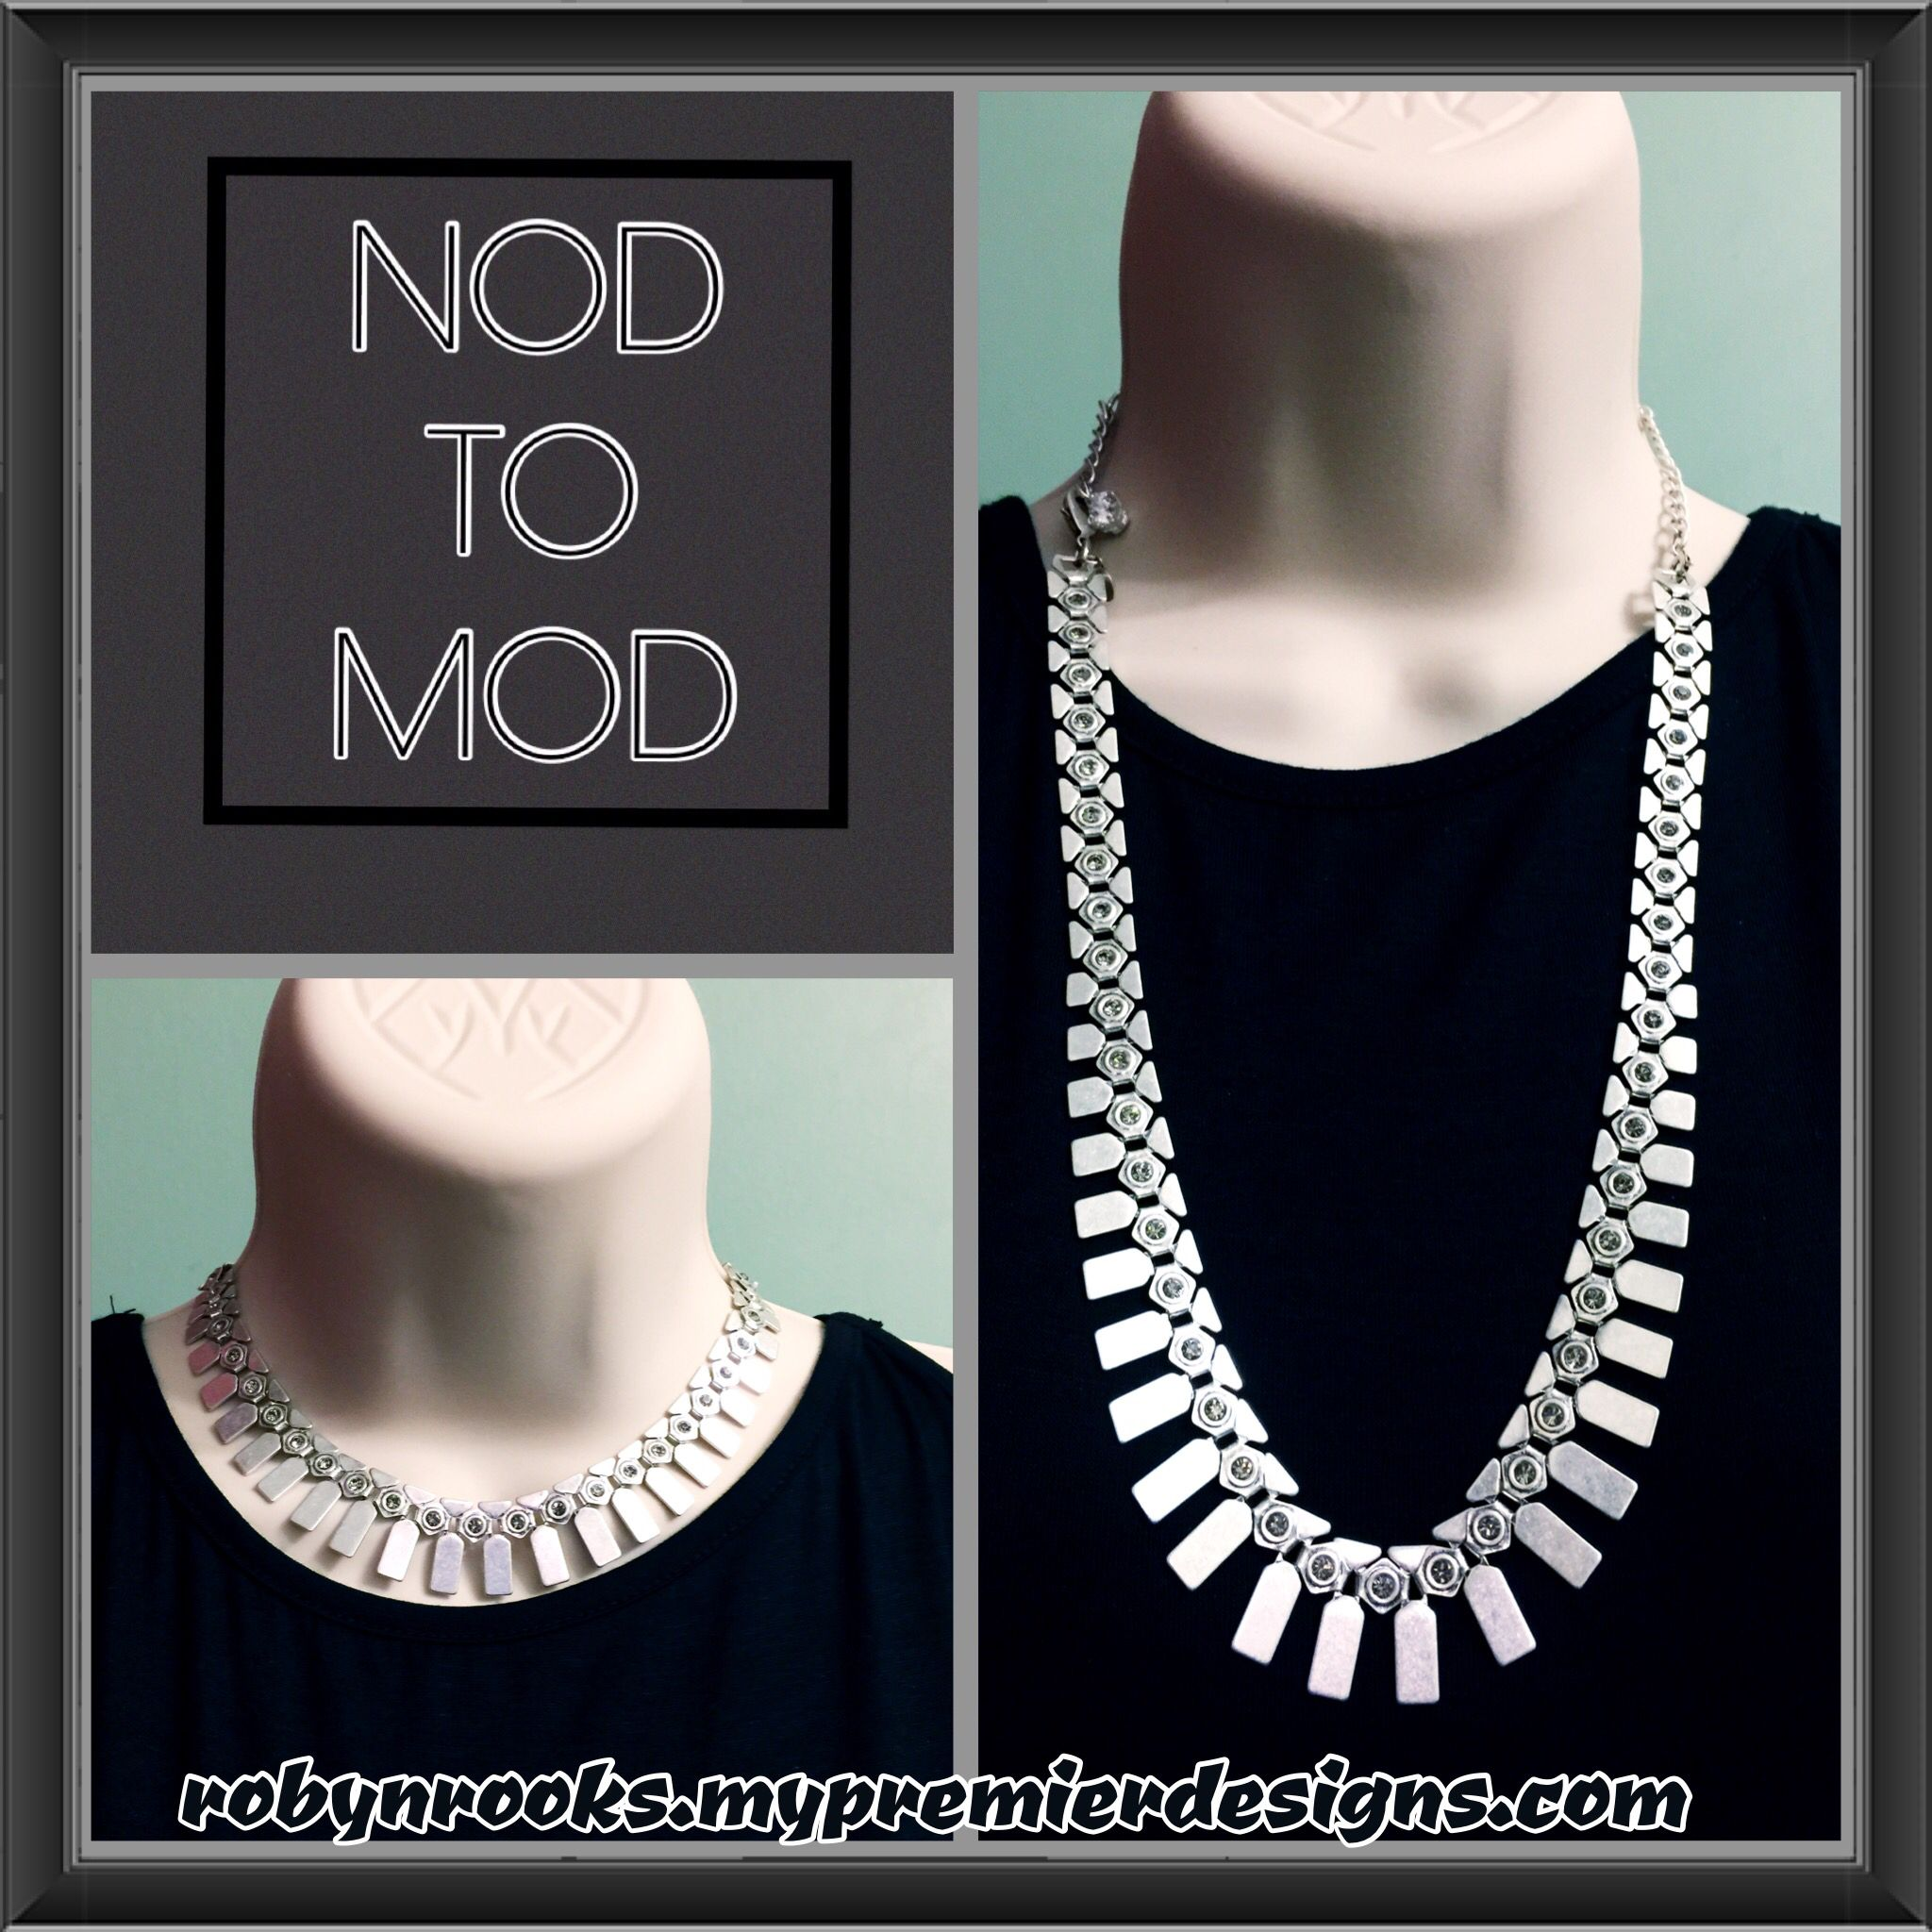 Premier designs jewelry 2015 - Nod To Mod From Premier Designs 2015 2016 Line Premier Designs Jewelry